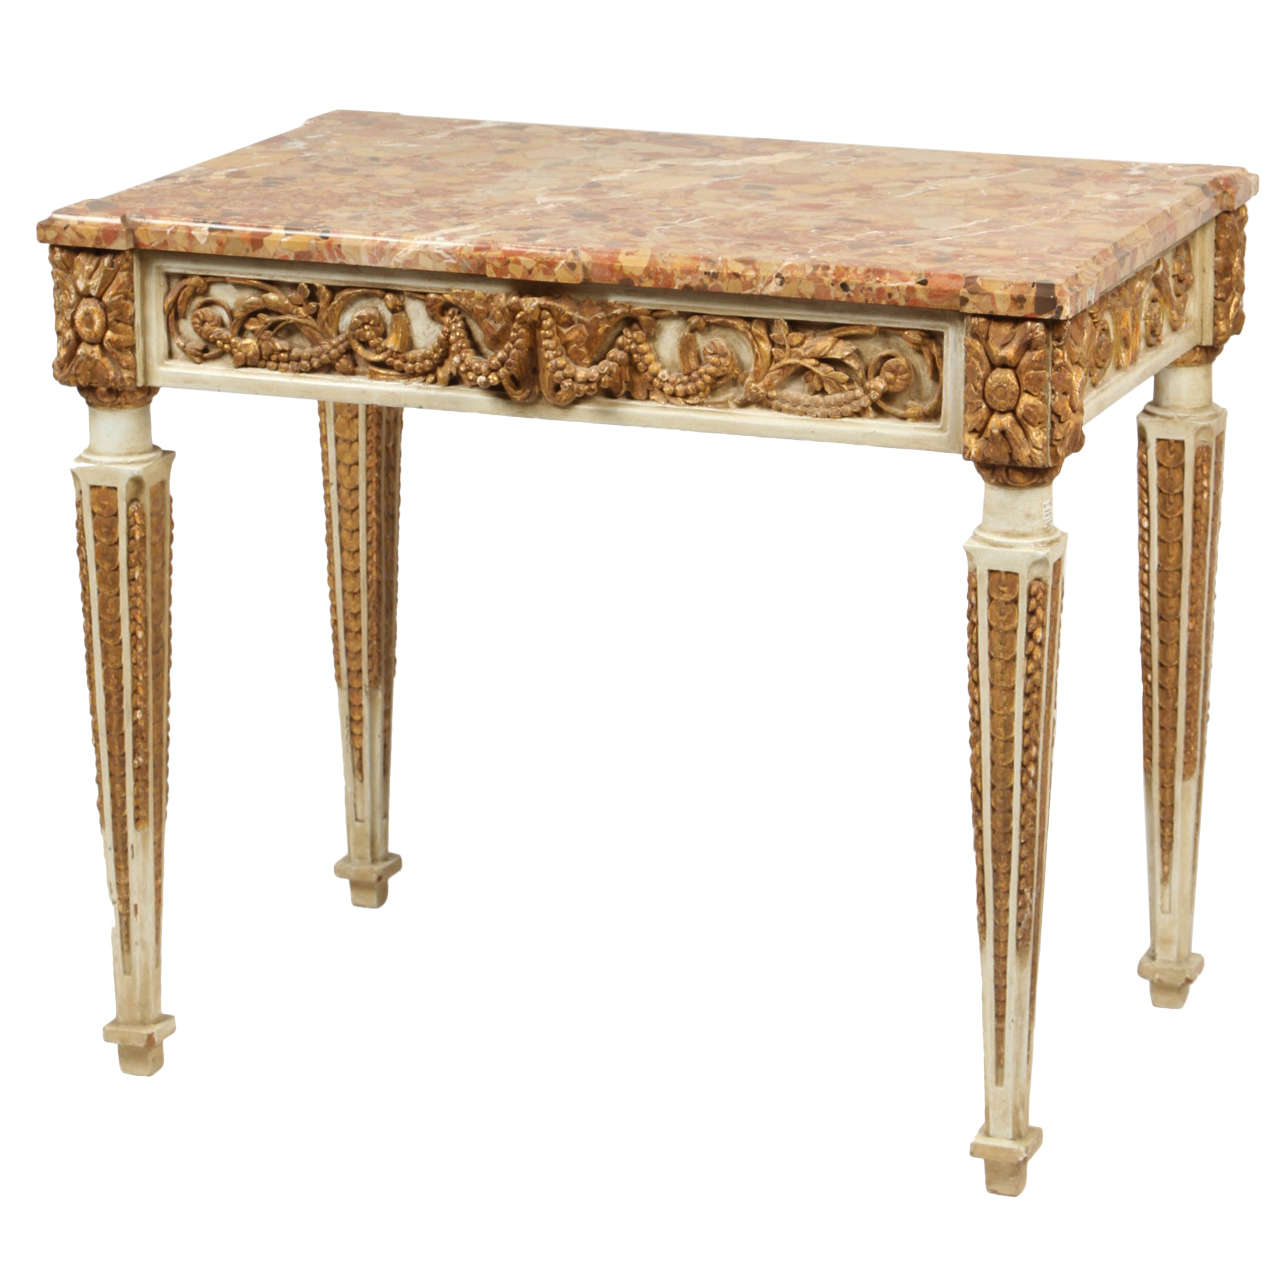 Carved And Gilt Italian Console Table, Late 18th Century For Sale